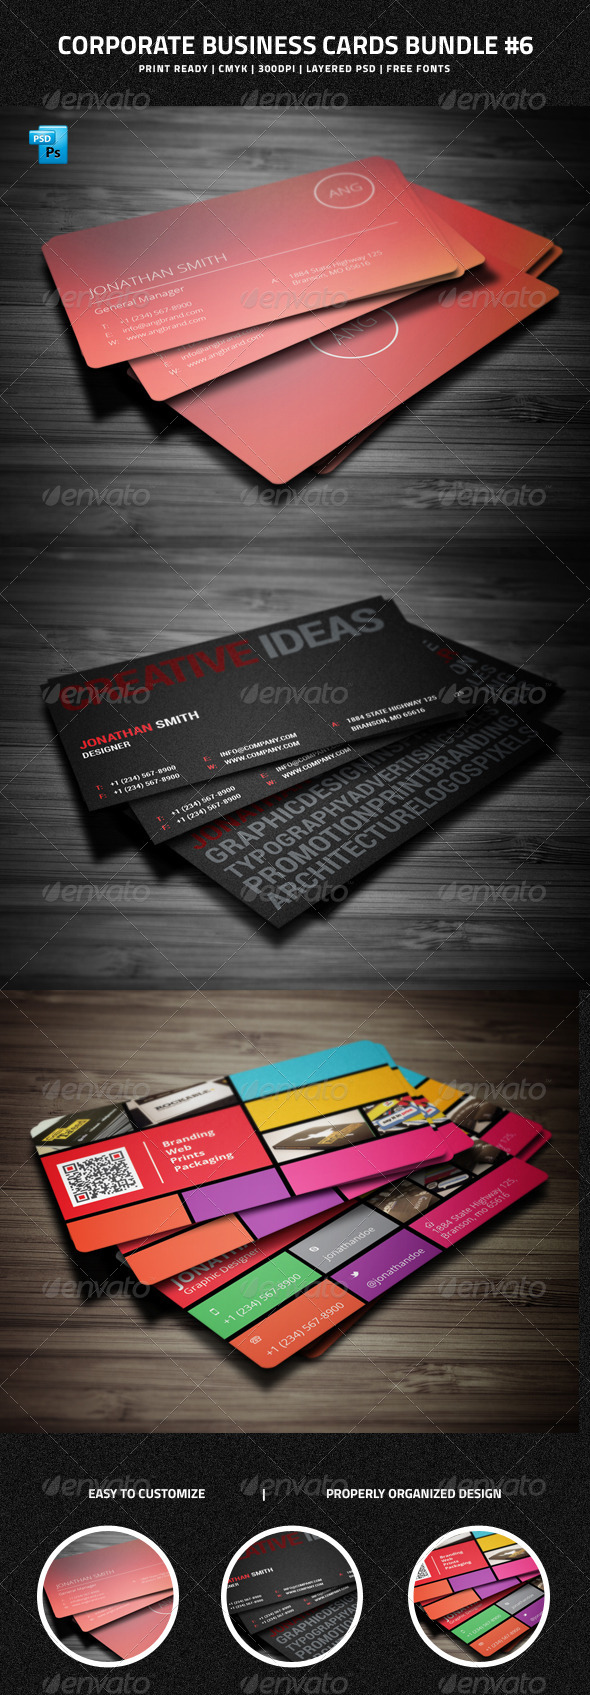 GraphicRiver Corporate Business Cards Bundle #6 7519607